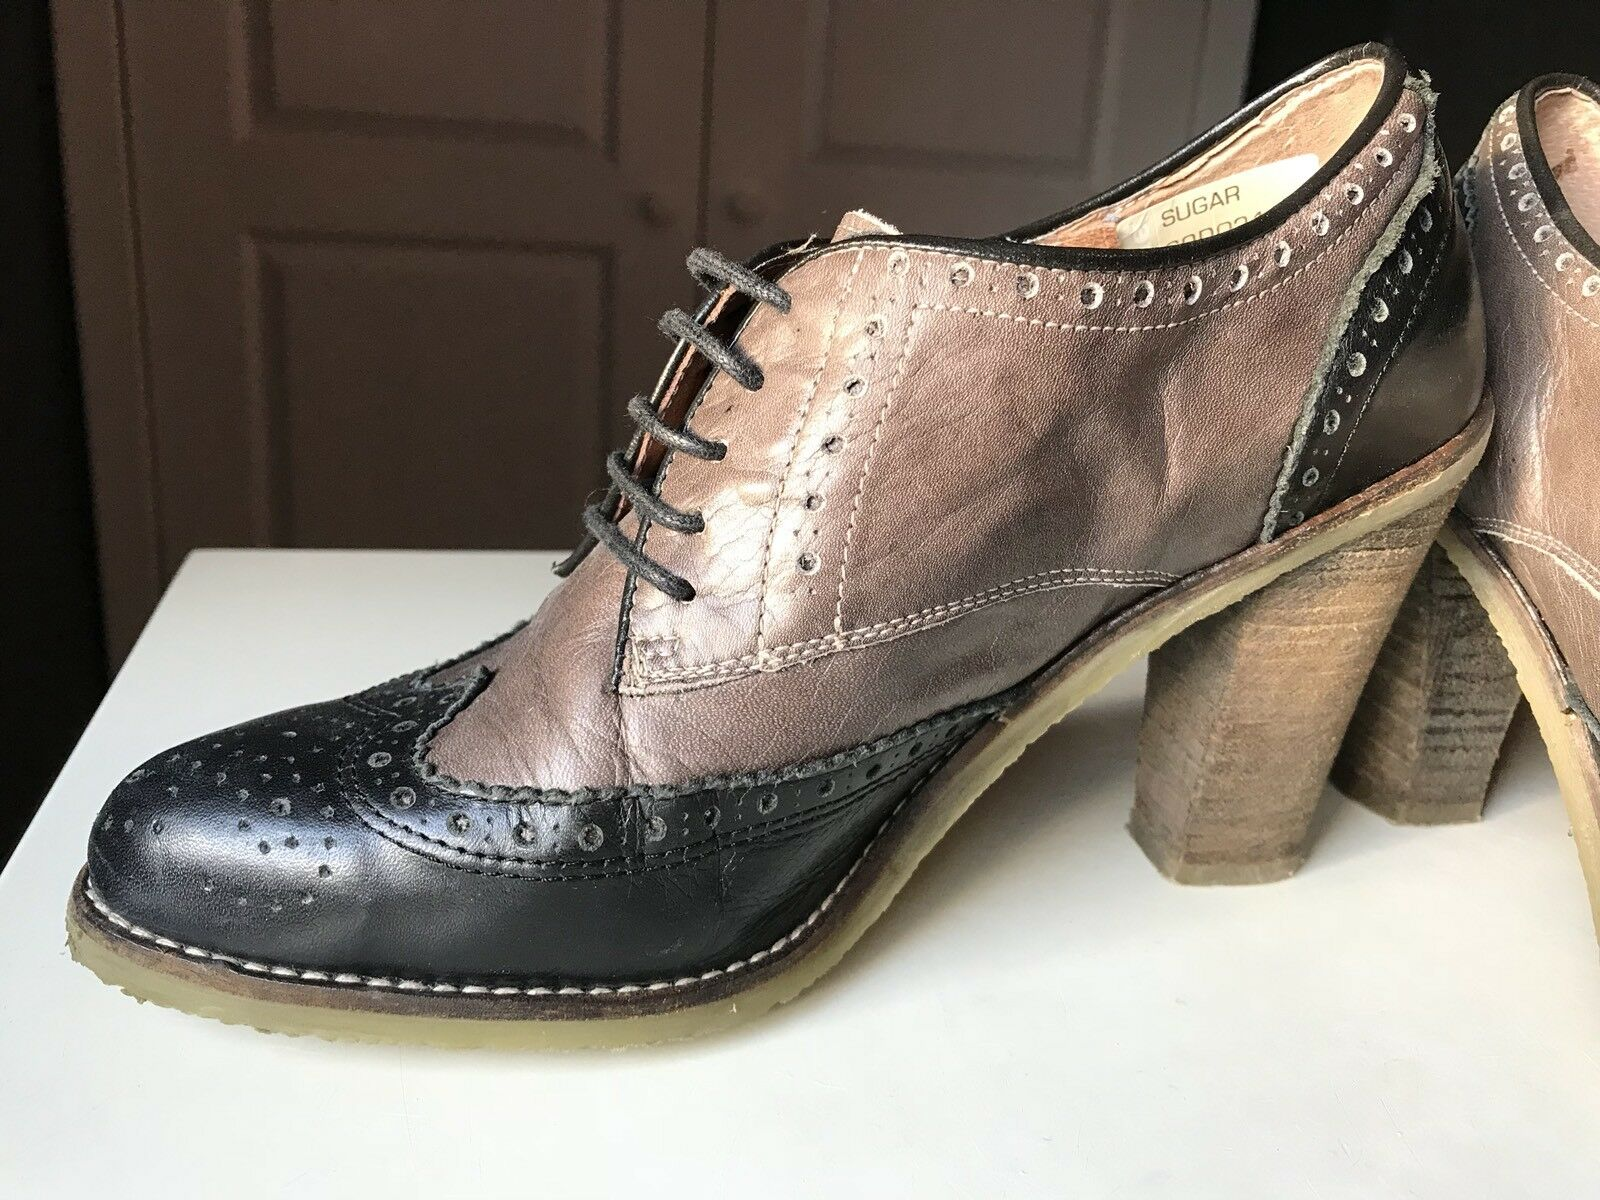 DUNE Court High Heel Sandal shoes Ankle Ankle Ankle Boot Black Brown Brogue Leather Size 6 39 90bdca